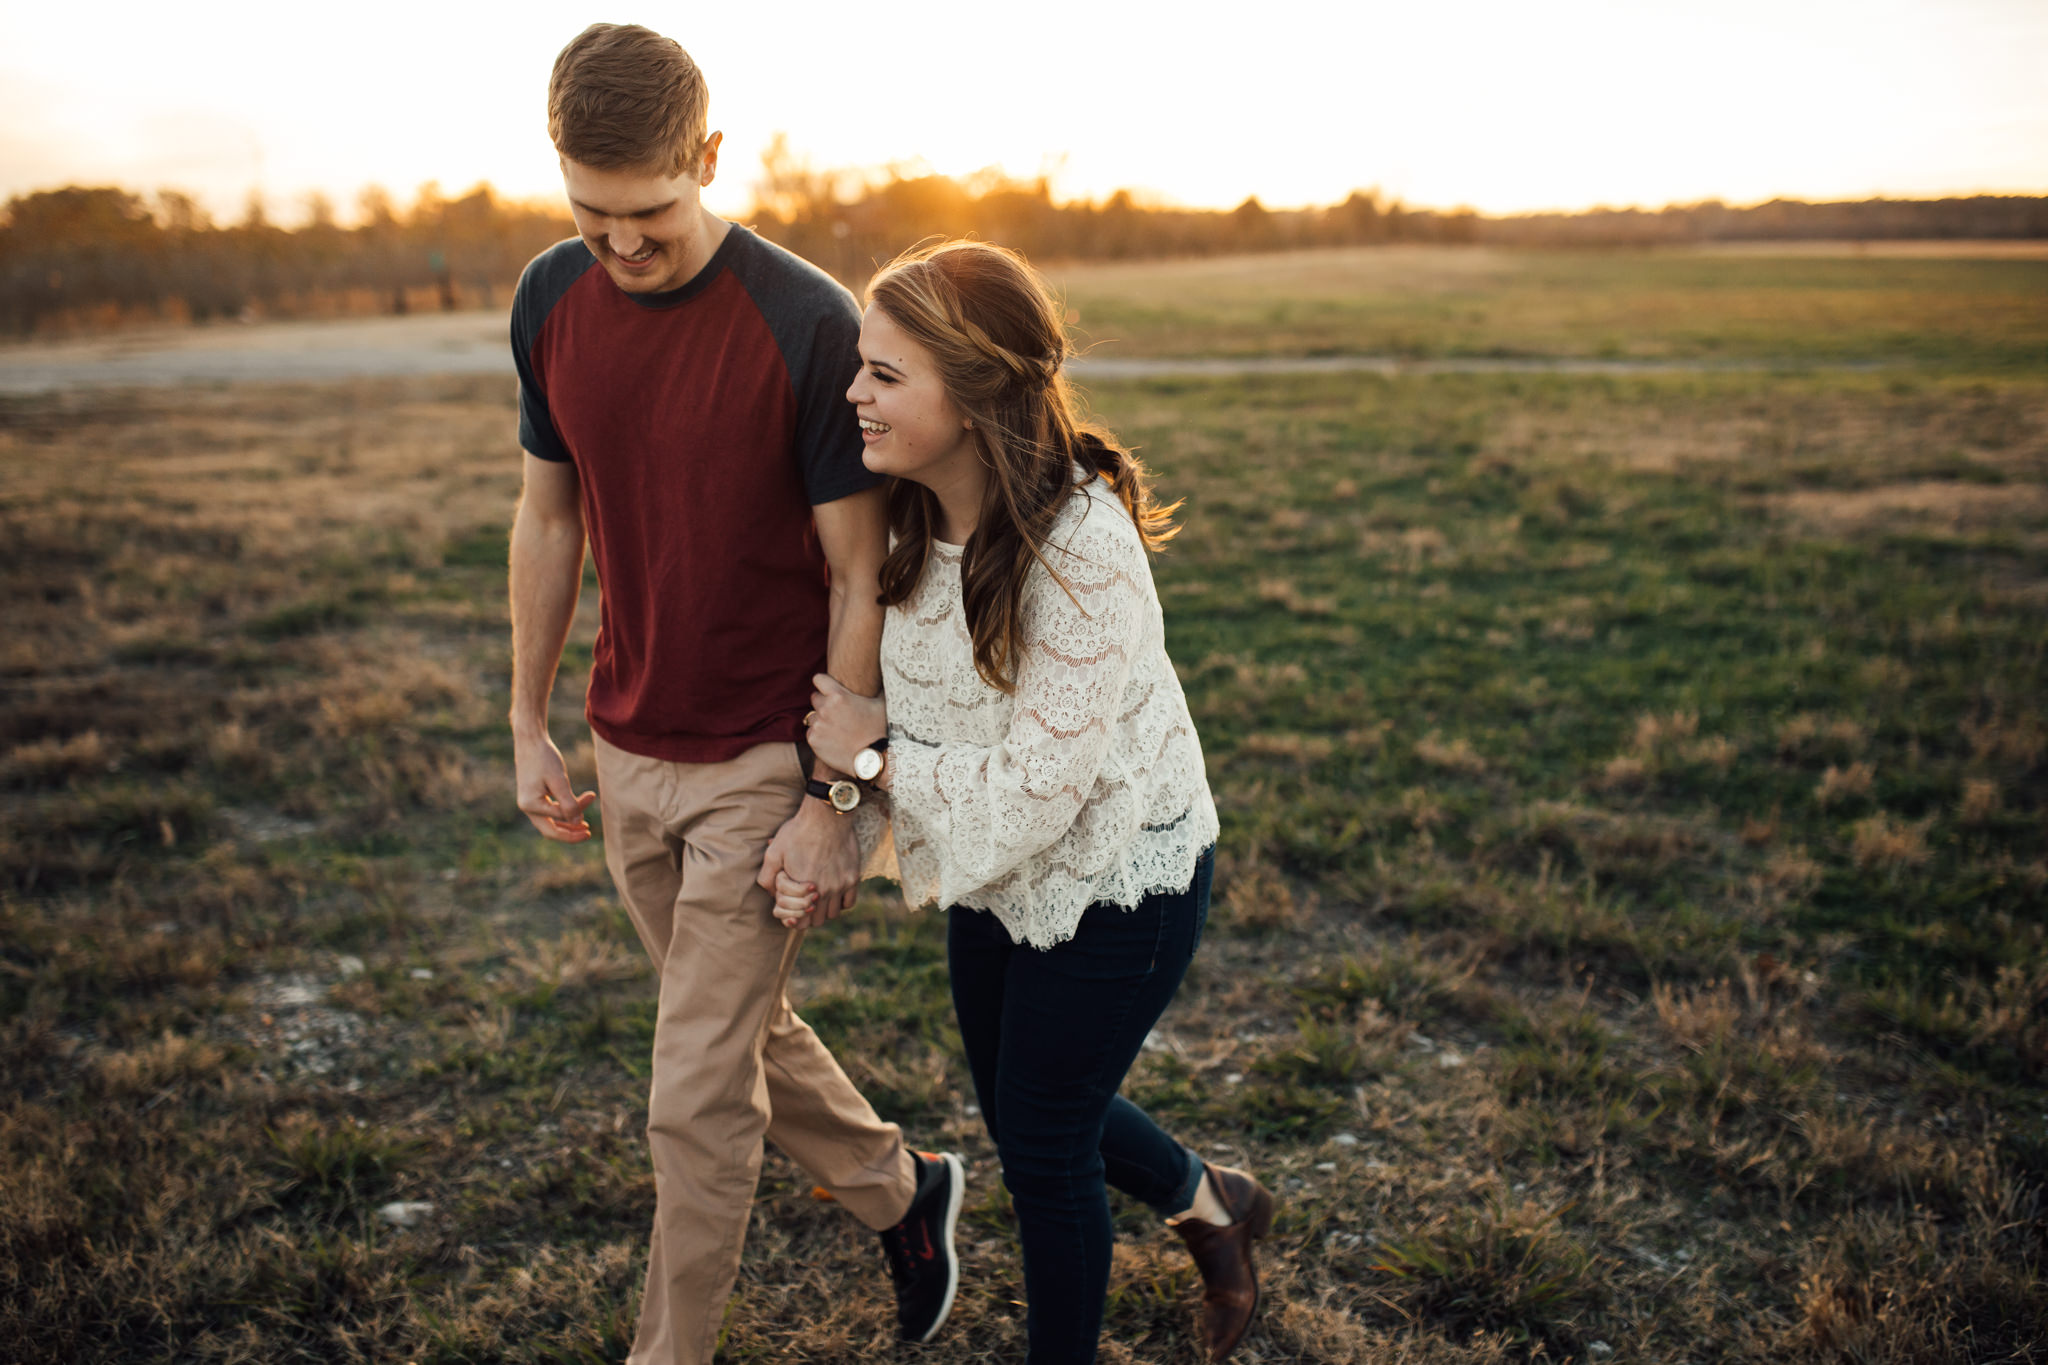 memphis-wedding-photographer-greenhouse-engagement-pictures-cassie-cook-photography-39.jpg